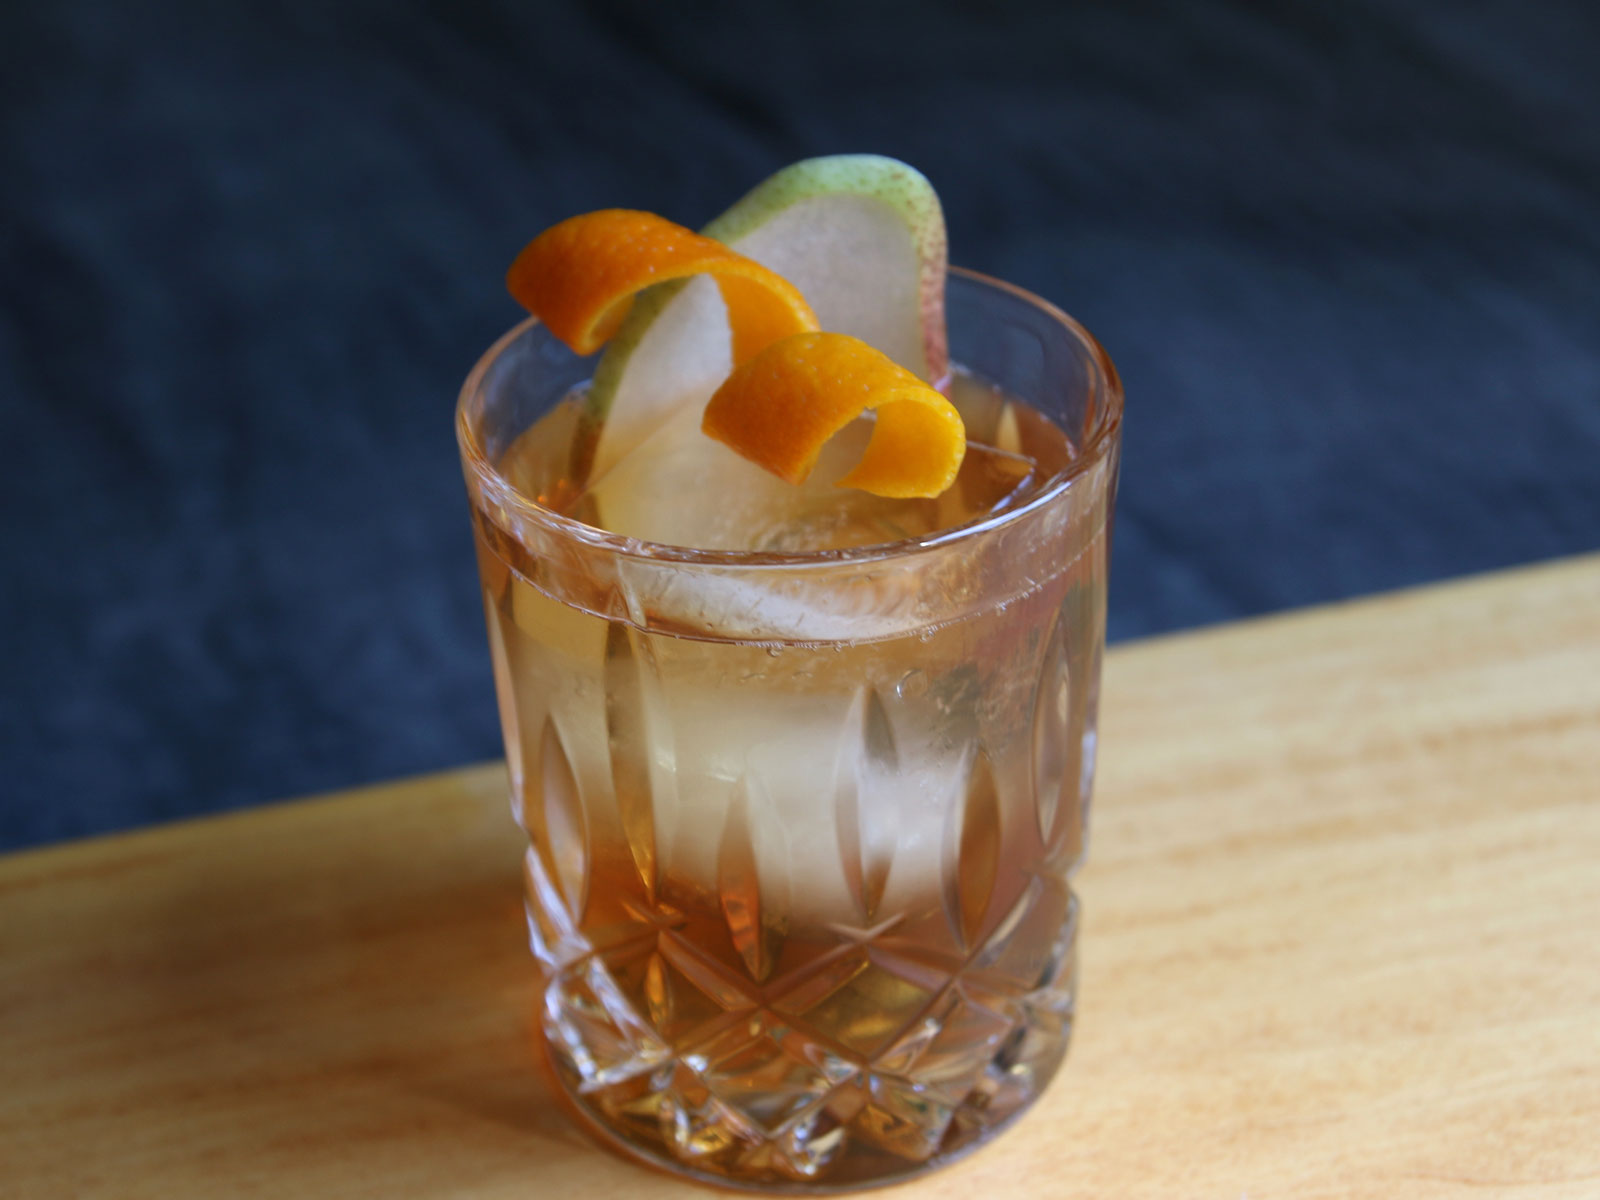 Rum, Sherry, and Pear Cocktail